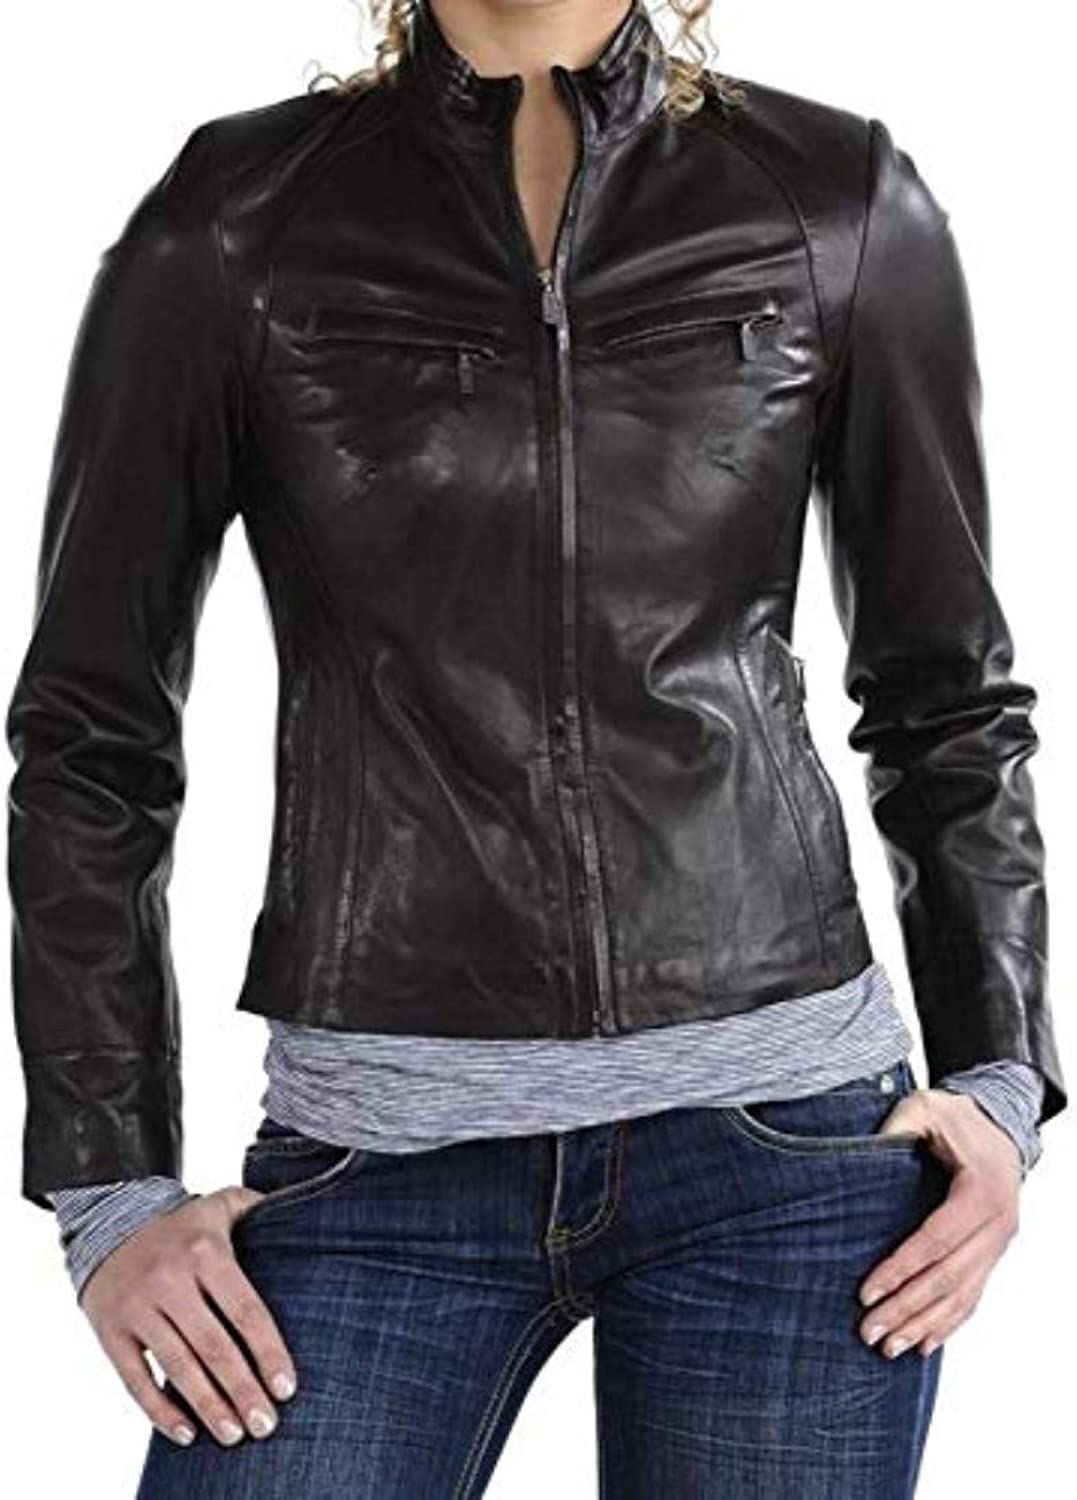 New Fashion Style Women's Leather Jackets Black K99_